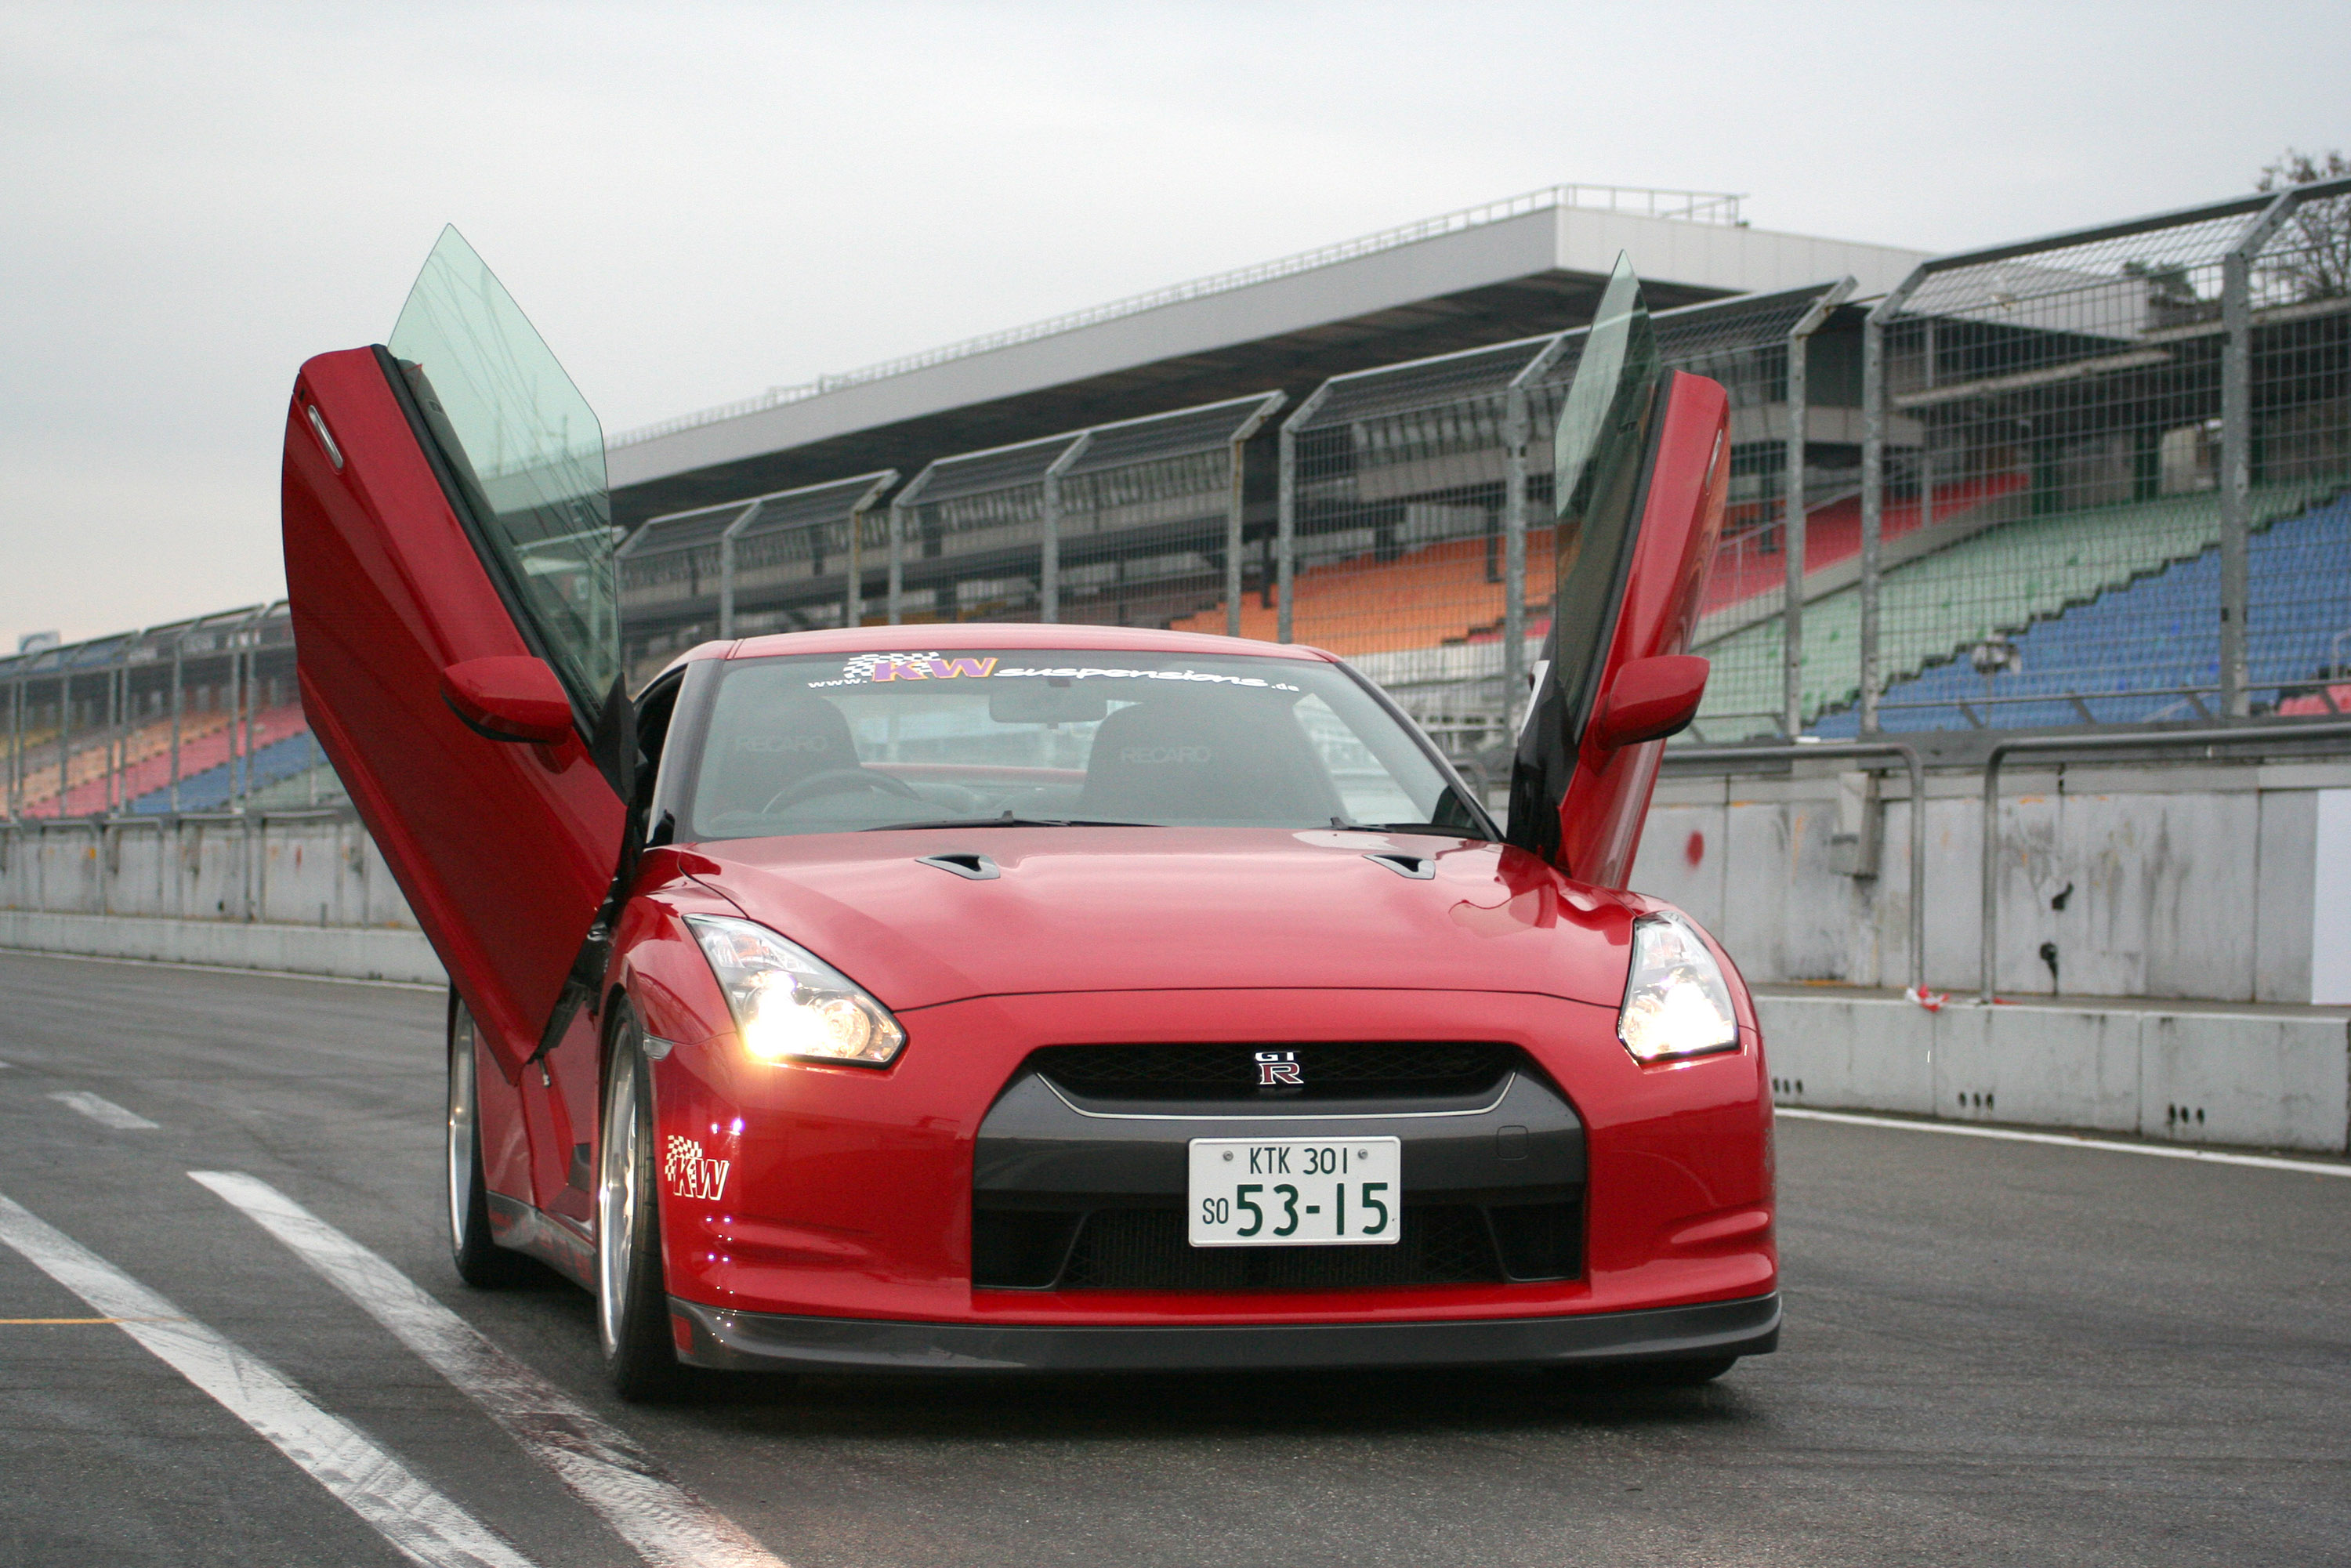 ... Nissan GT-R with LSD wing doors 4 of 4 & LSD wing doors for Nissan GT-R